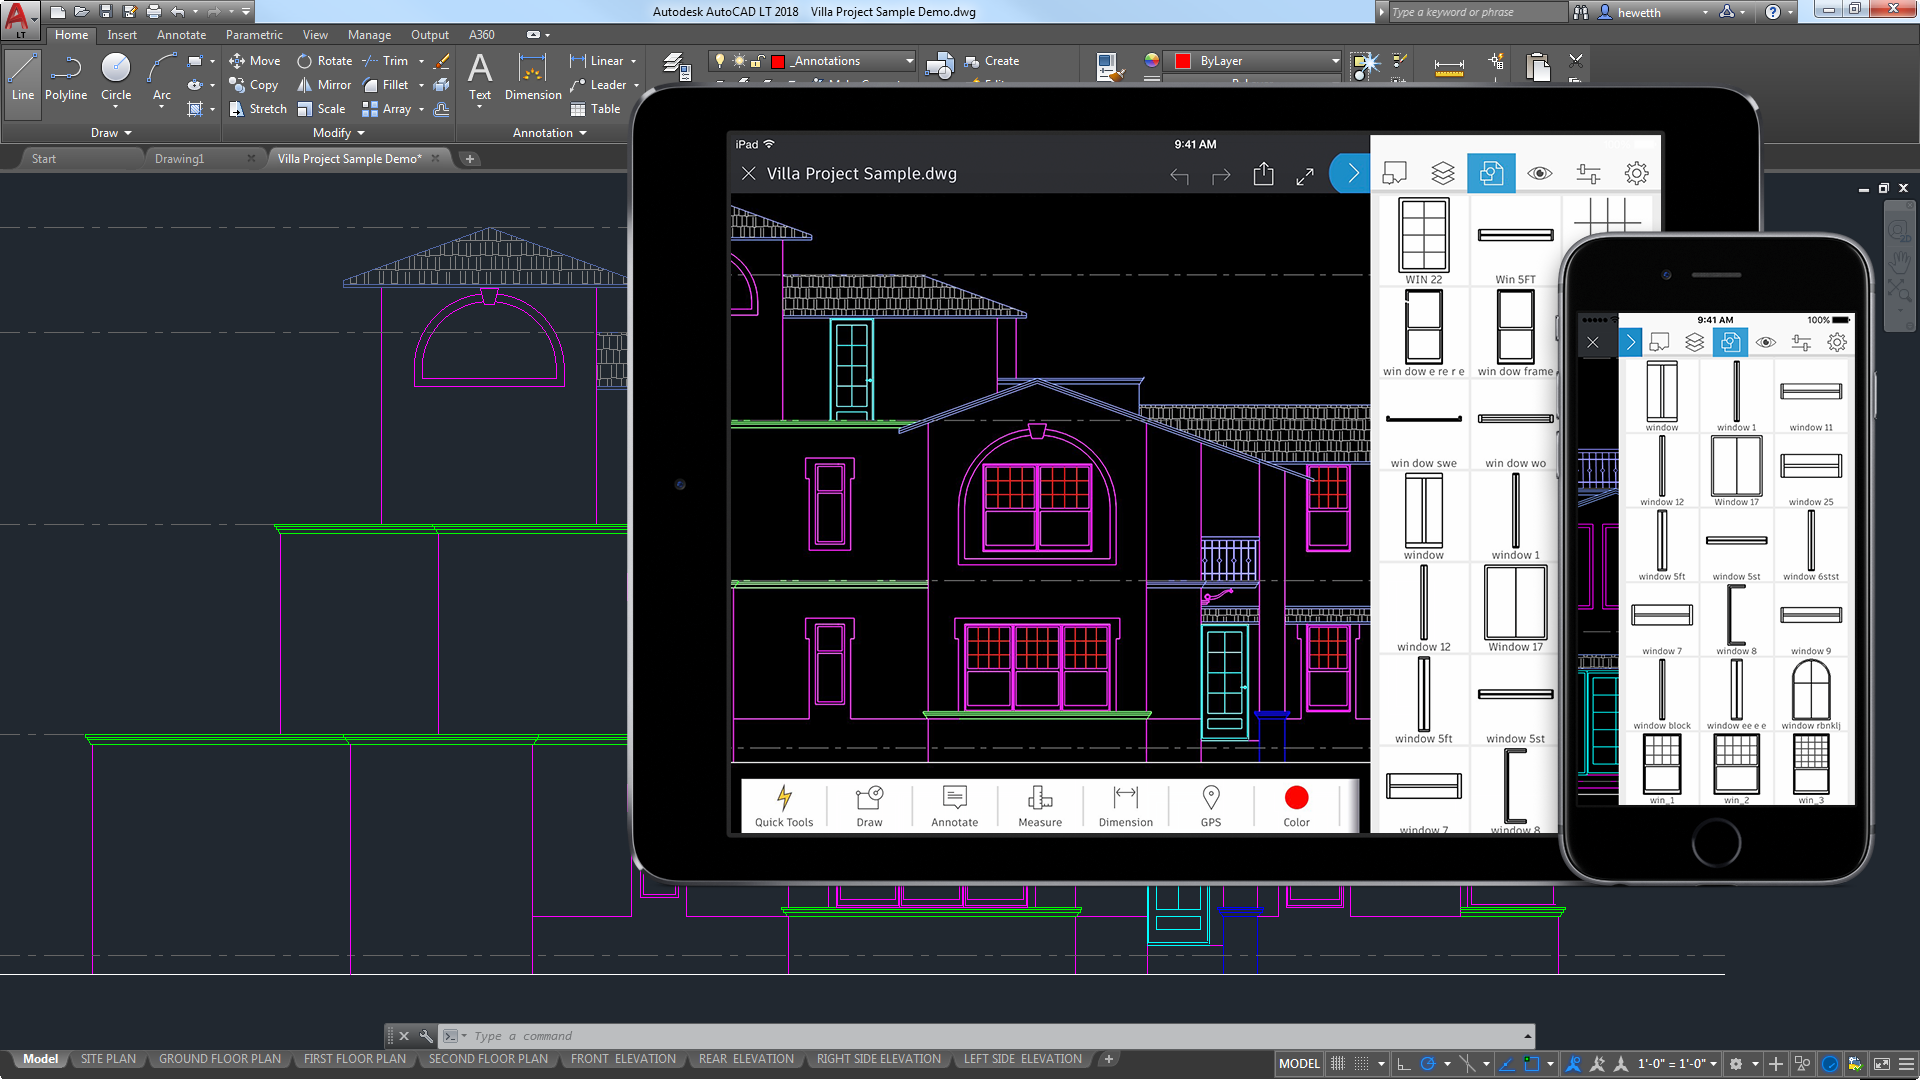 AutoCAD LT Reviews 2019: Details, Pricing, & Features | G2